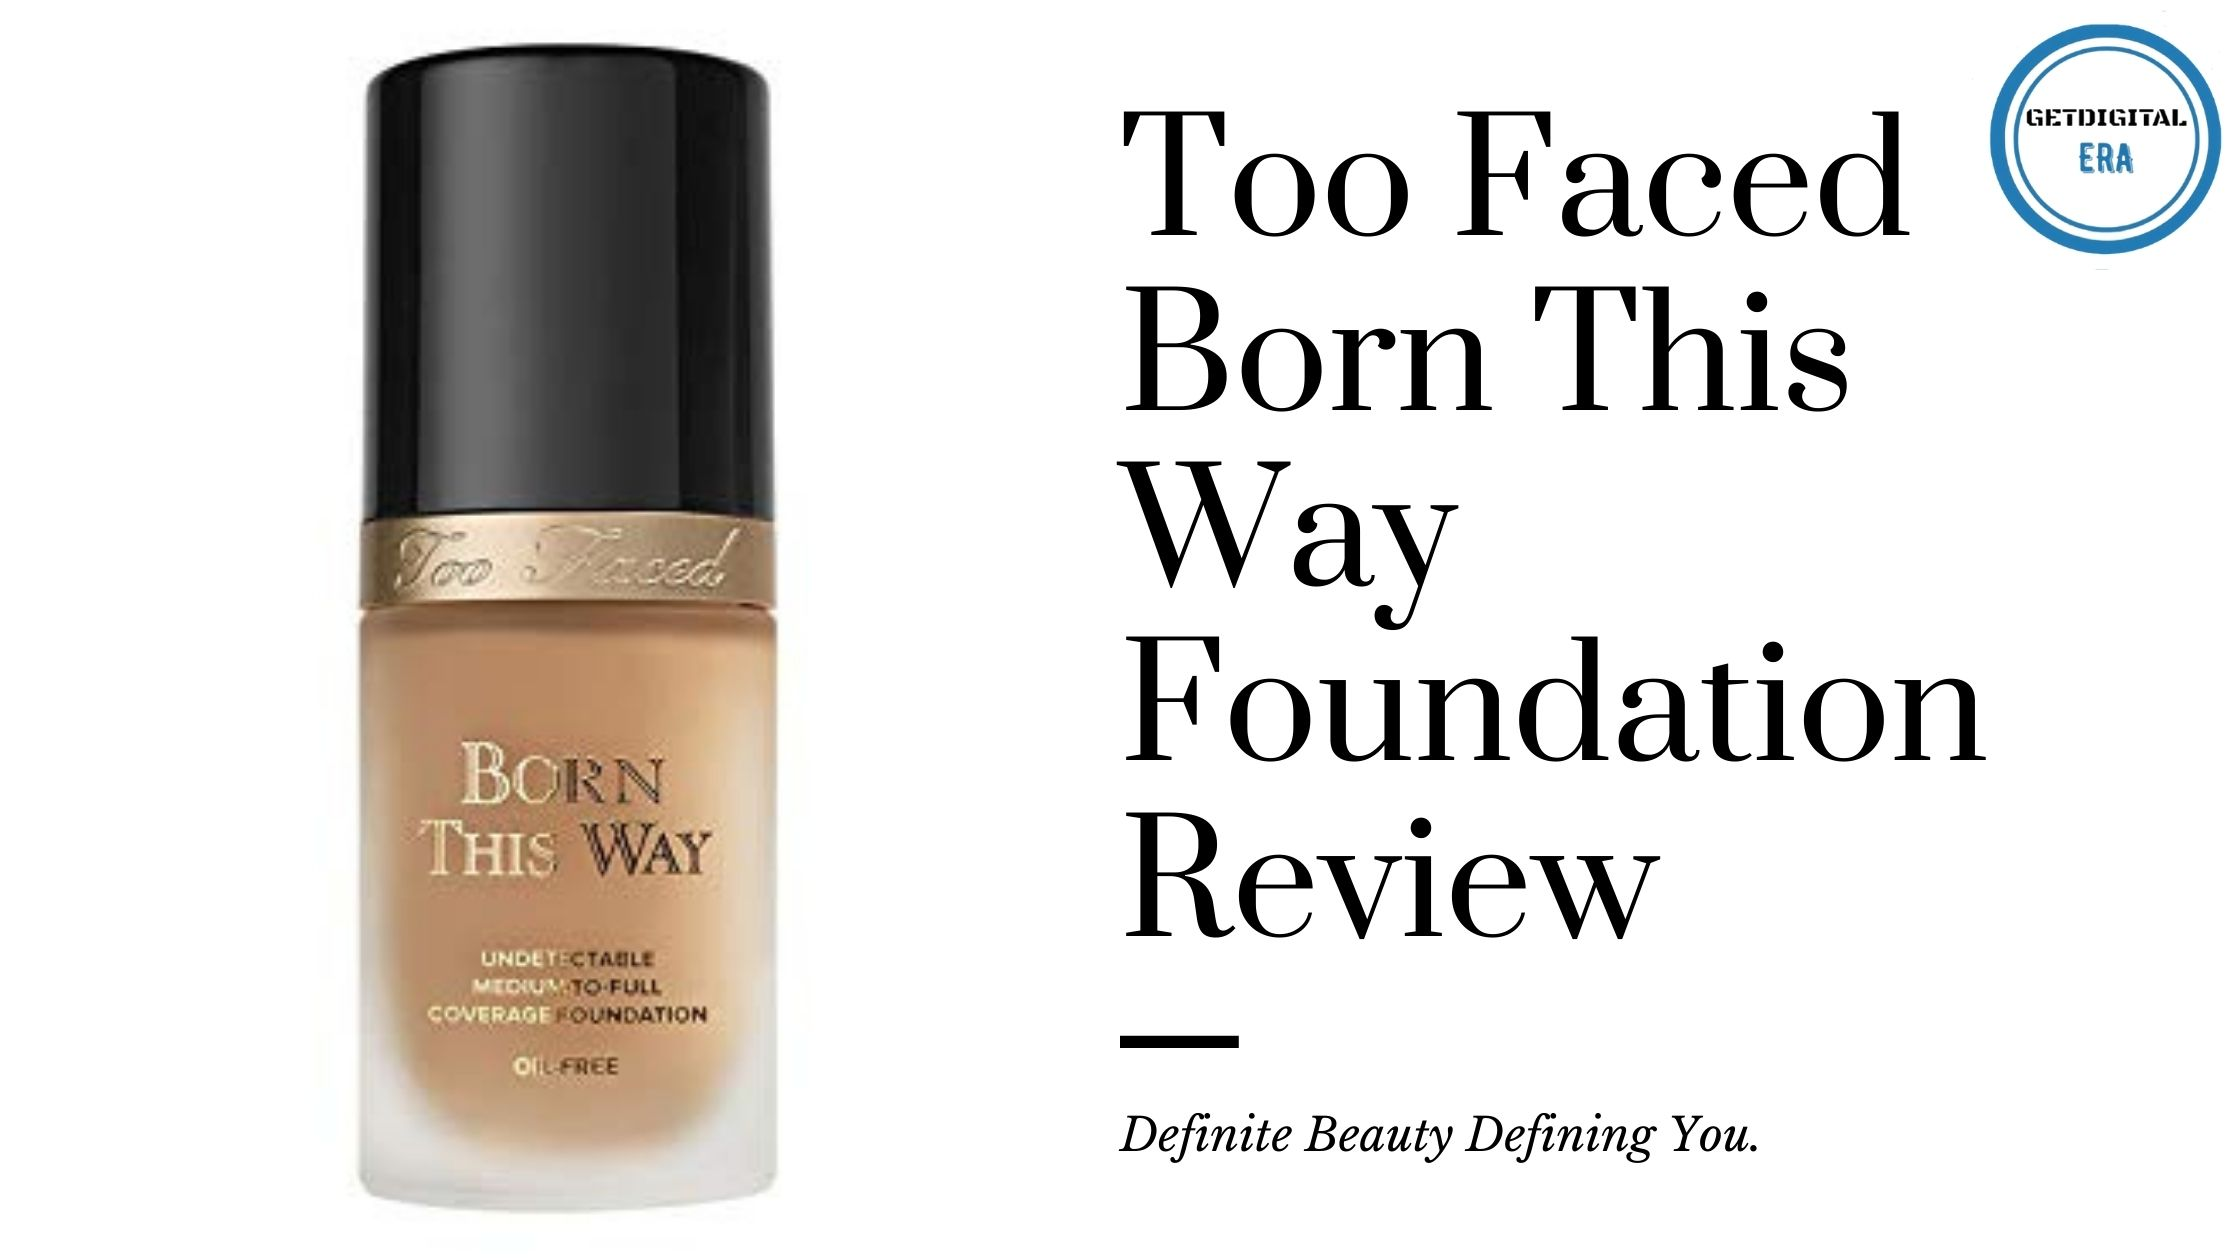 Too Faced Born This Way Foundation Review